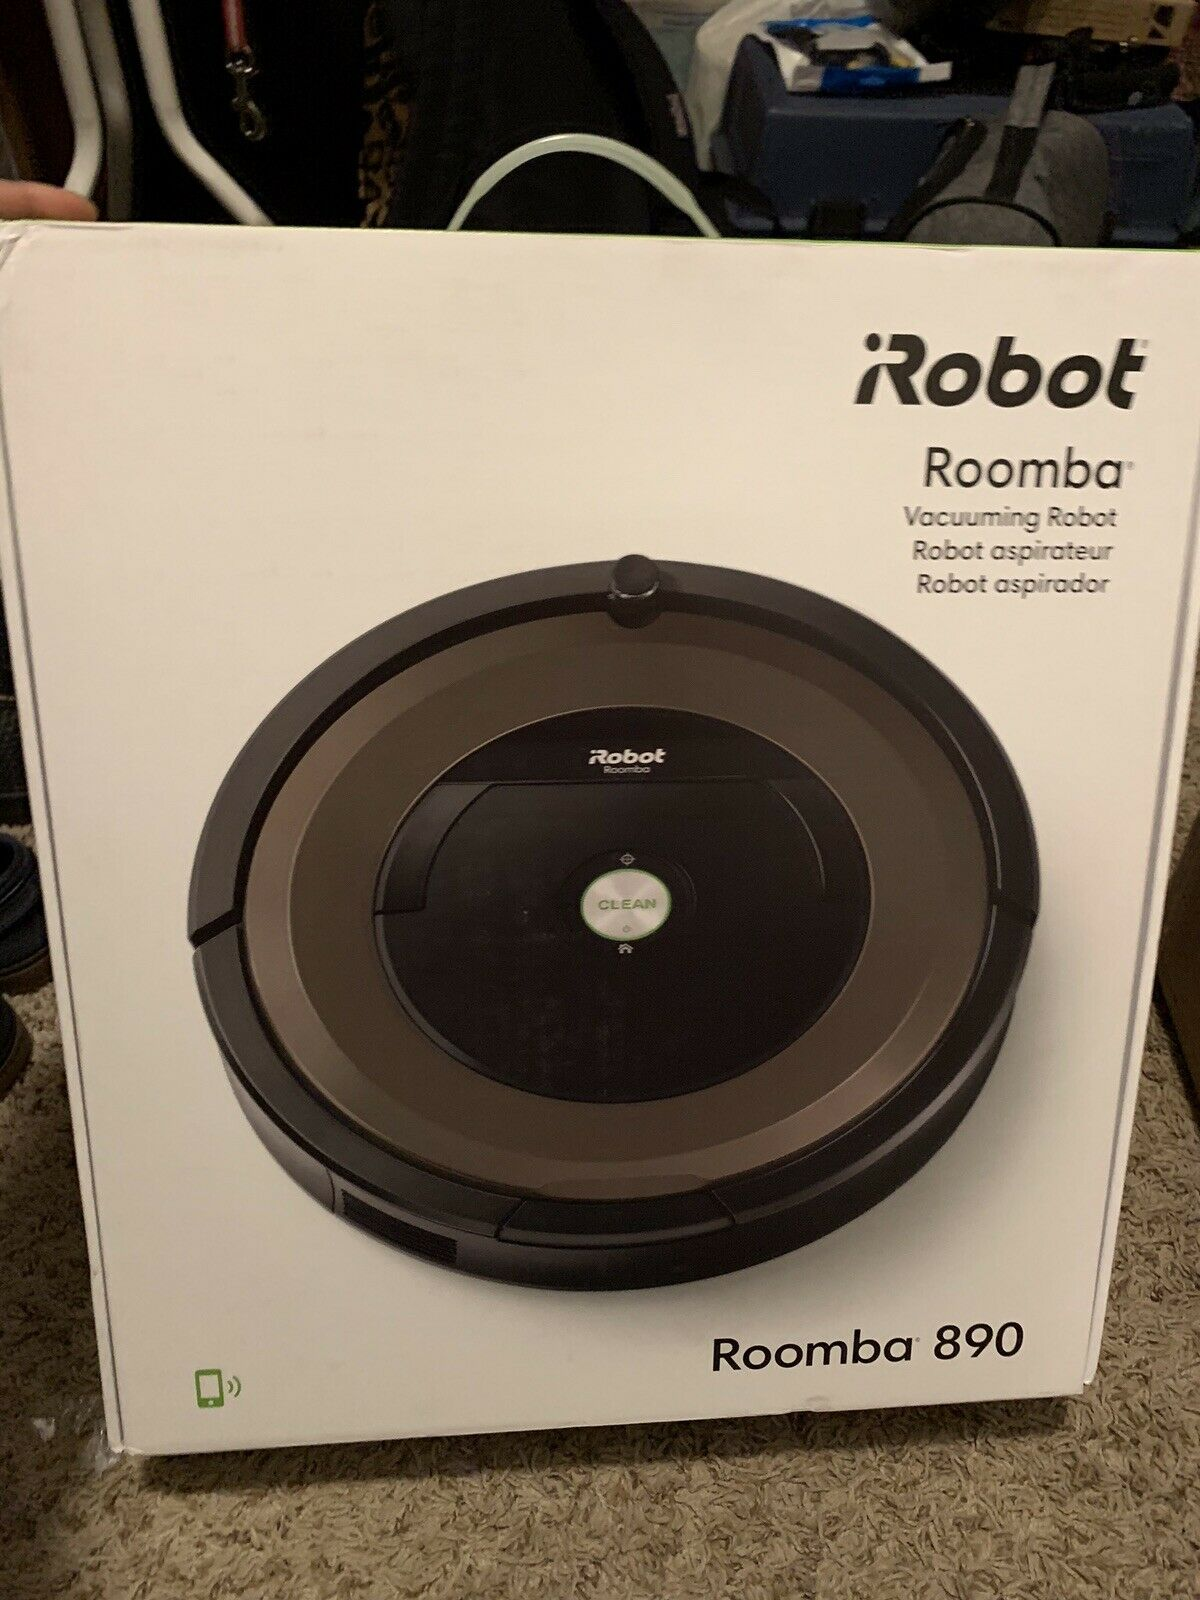 IRobot R890020 Roomba 890 Robot Vacuum With Wi-fi CONNECTIVITY